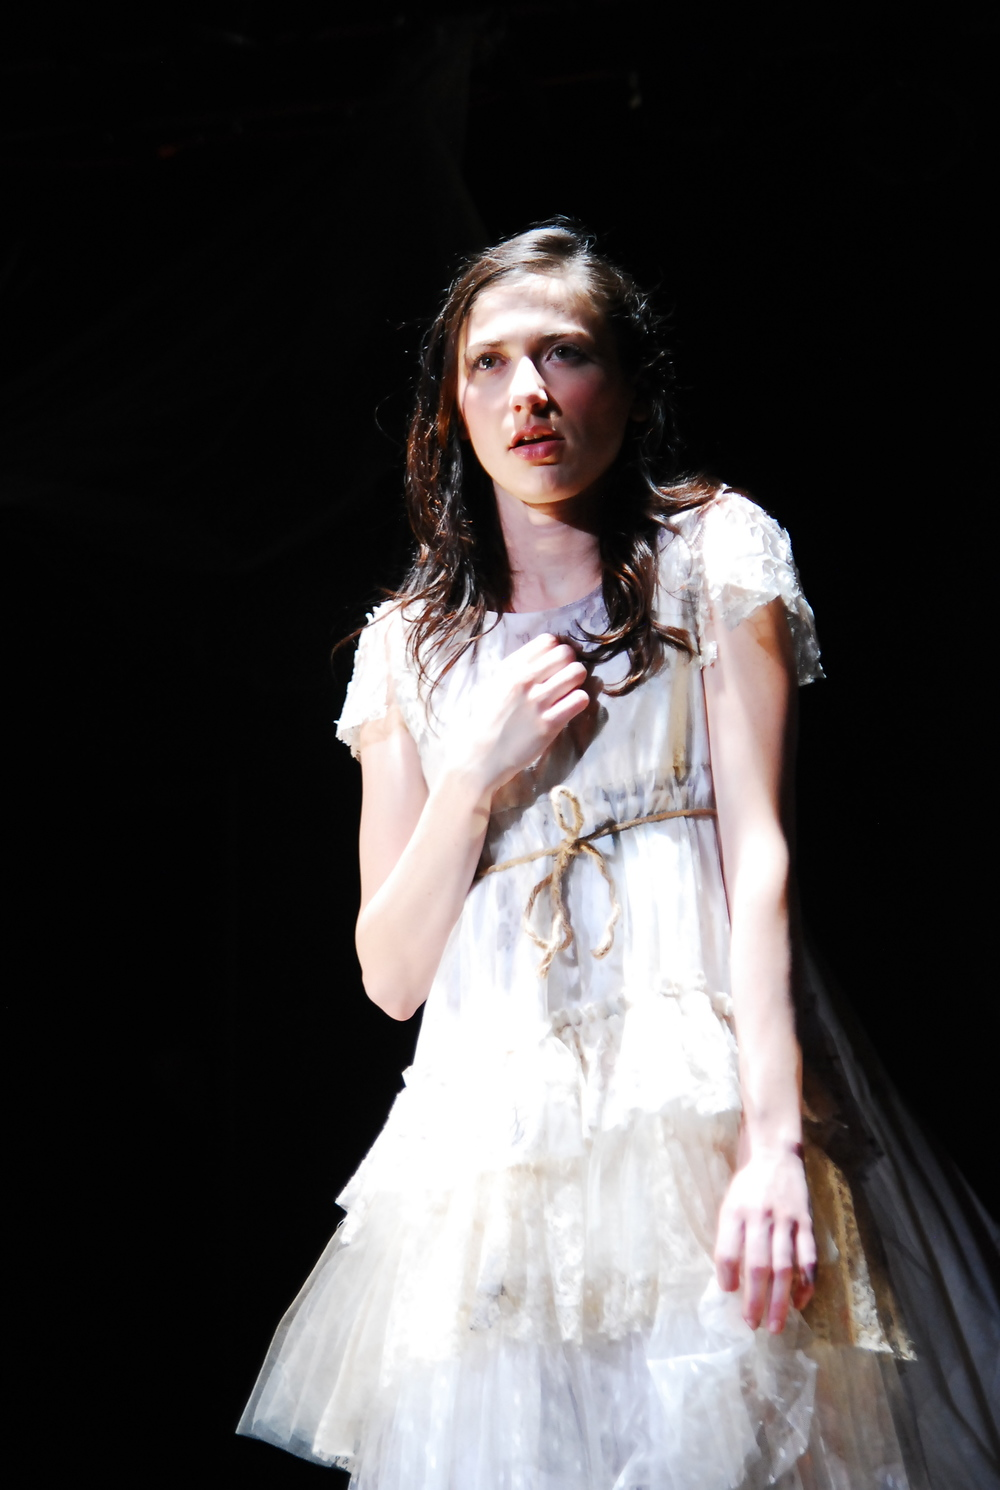 Robyn Buck as Arianna in  The Pliant Girls , Fugitive Kind's Ovation Award-winning production loosely based on Aeschylus's  The Suppliants .  Photo courtesy of Amanda McRaven   Download print quality (300 dpi)